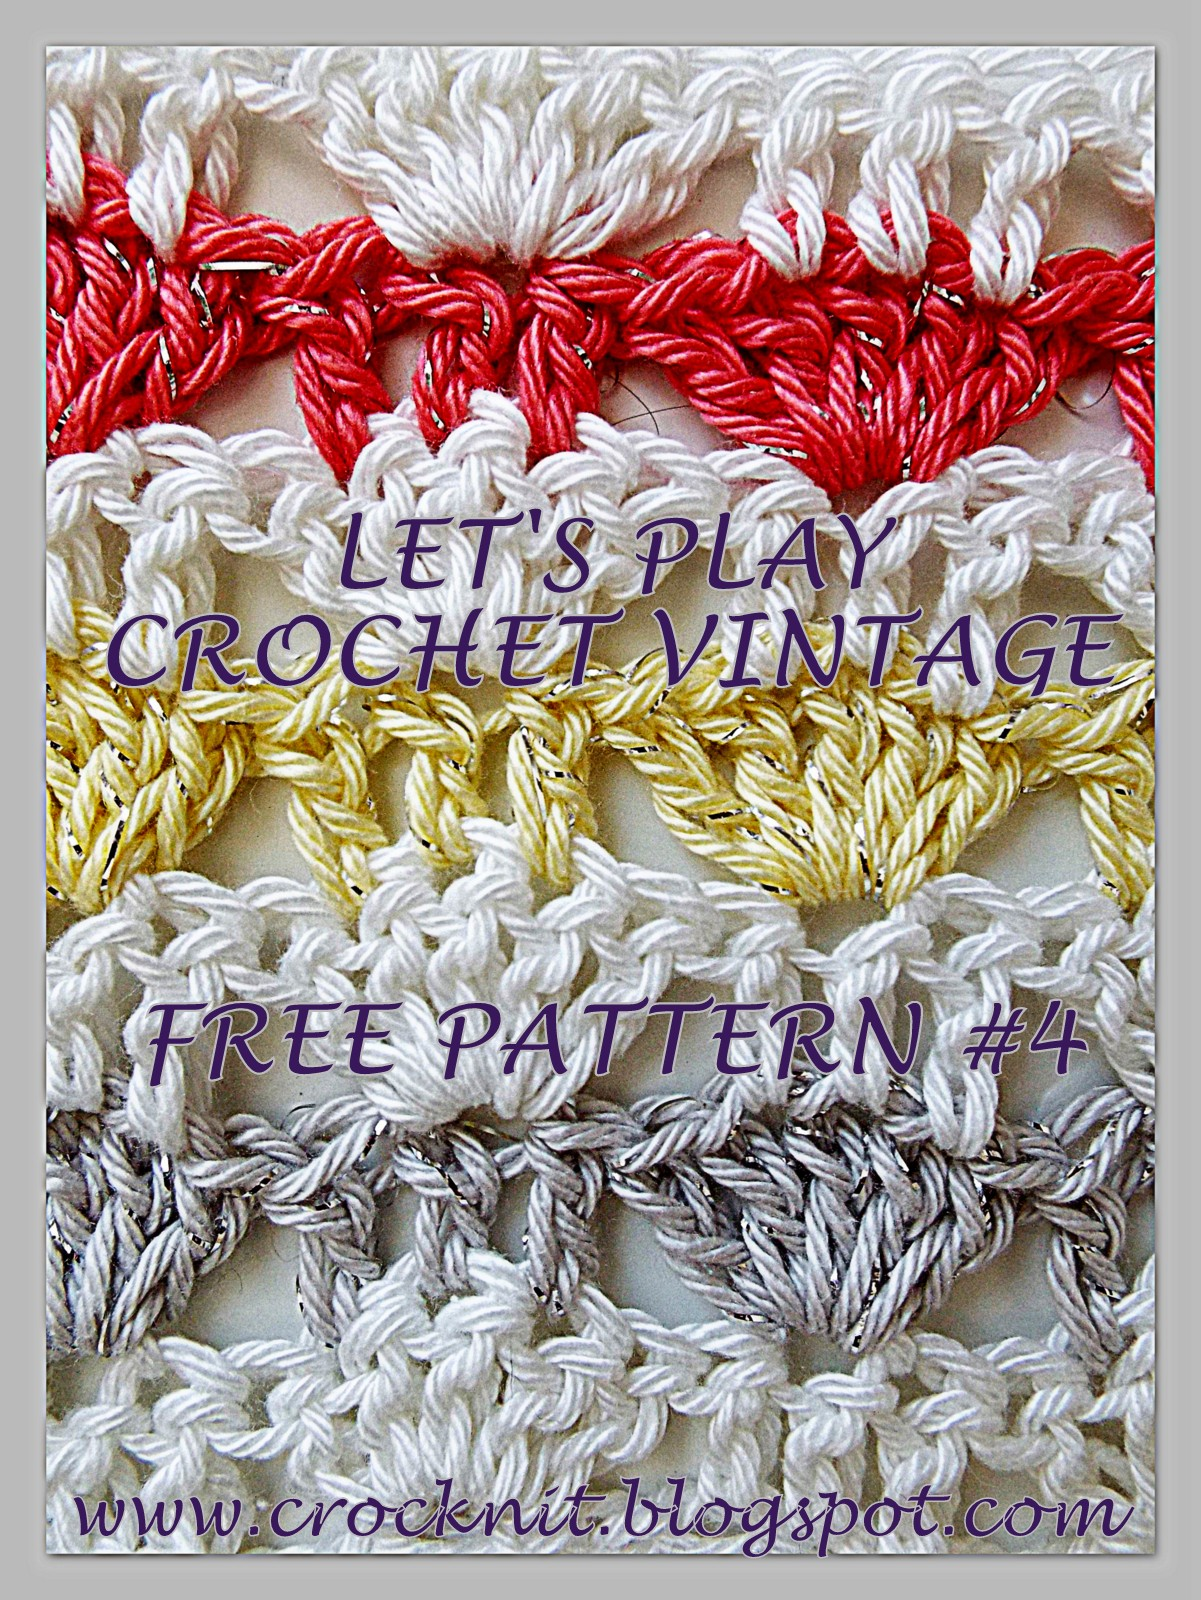 Crochet Stitch Rtrf : free crochet patterns, alternating shells, fans, how to crochet,